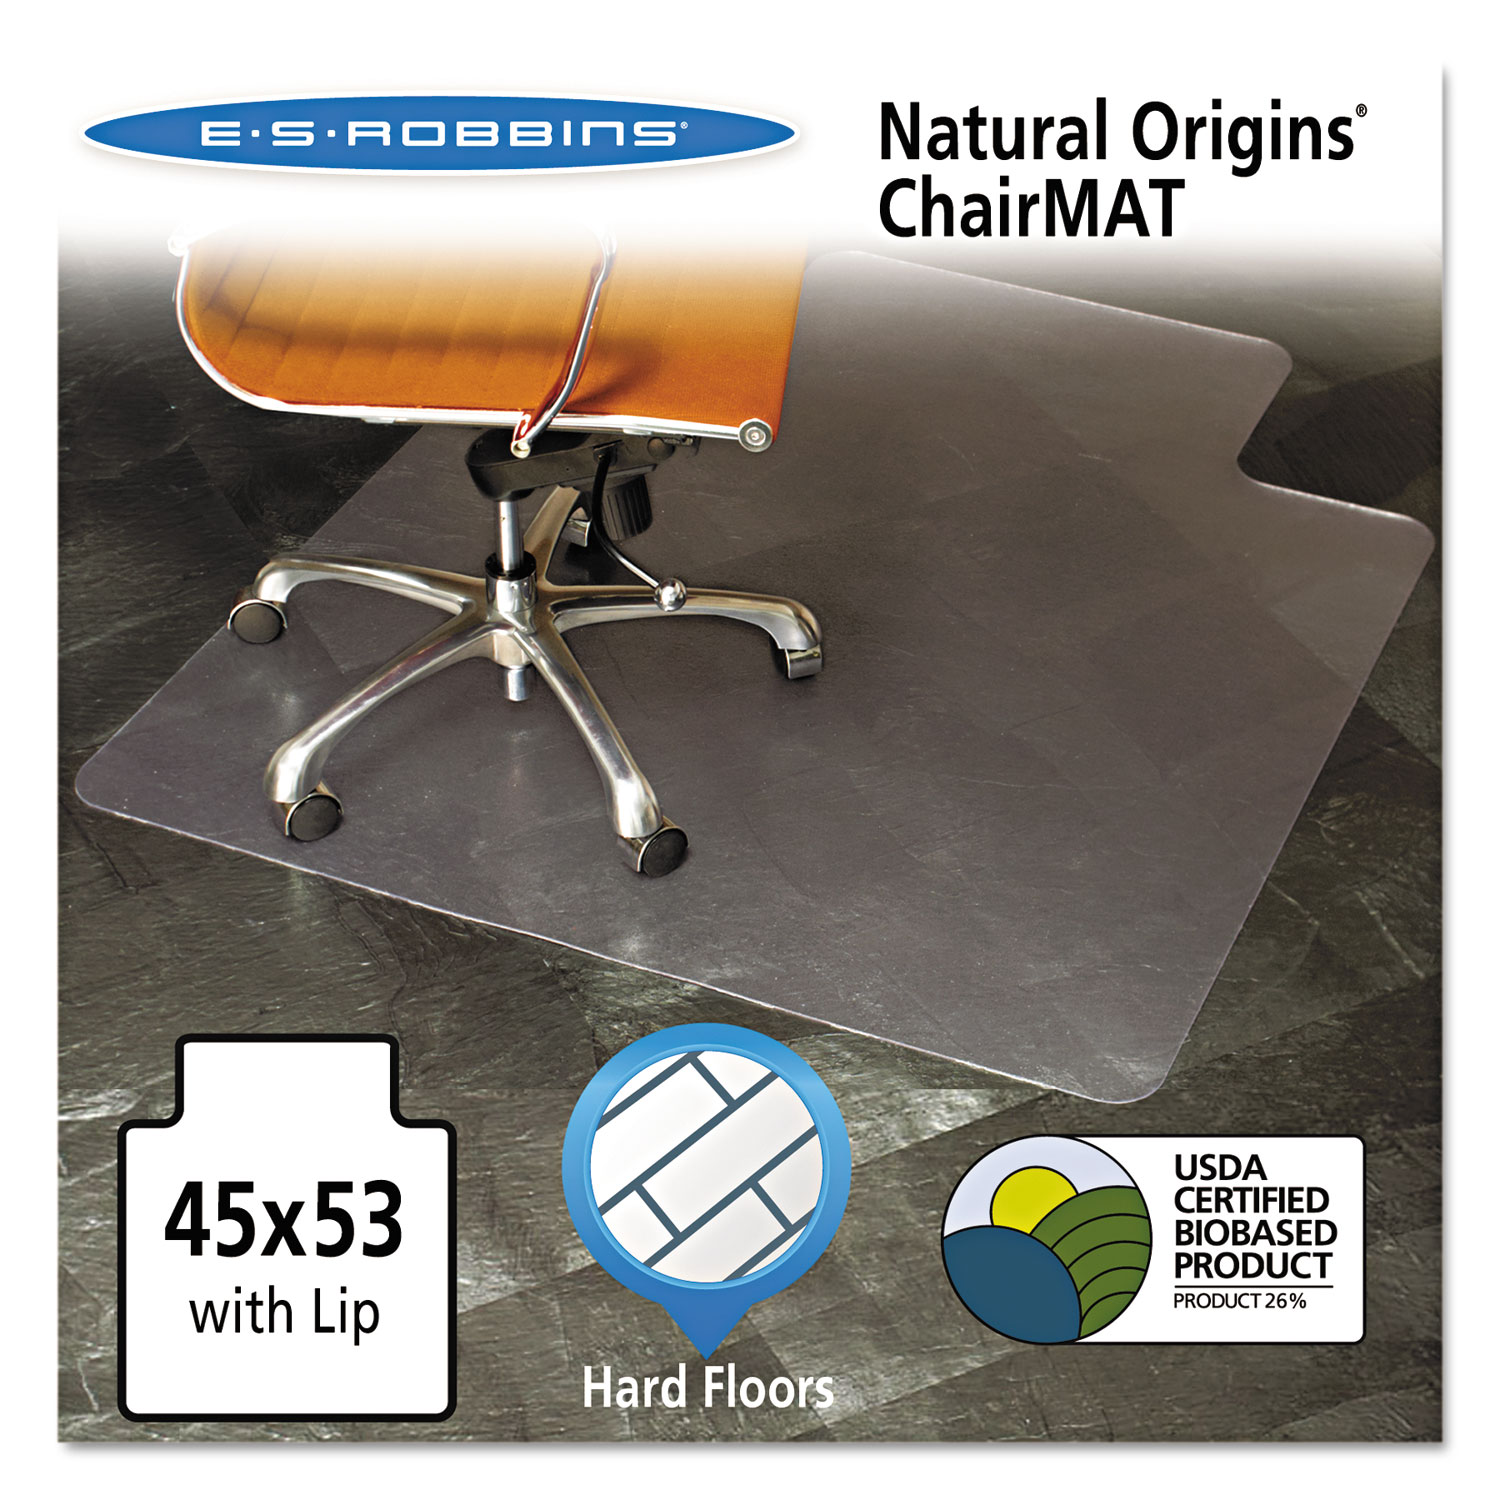 office chair mat 45 x 60 brown recliner cheapest natural origins with lip for hard floors 53 clear